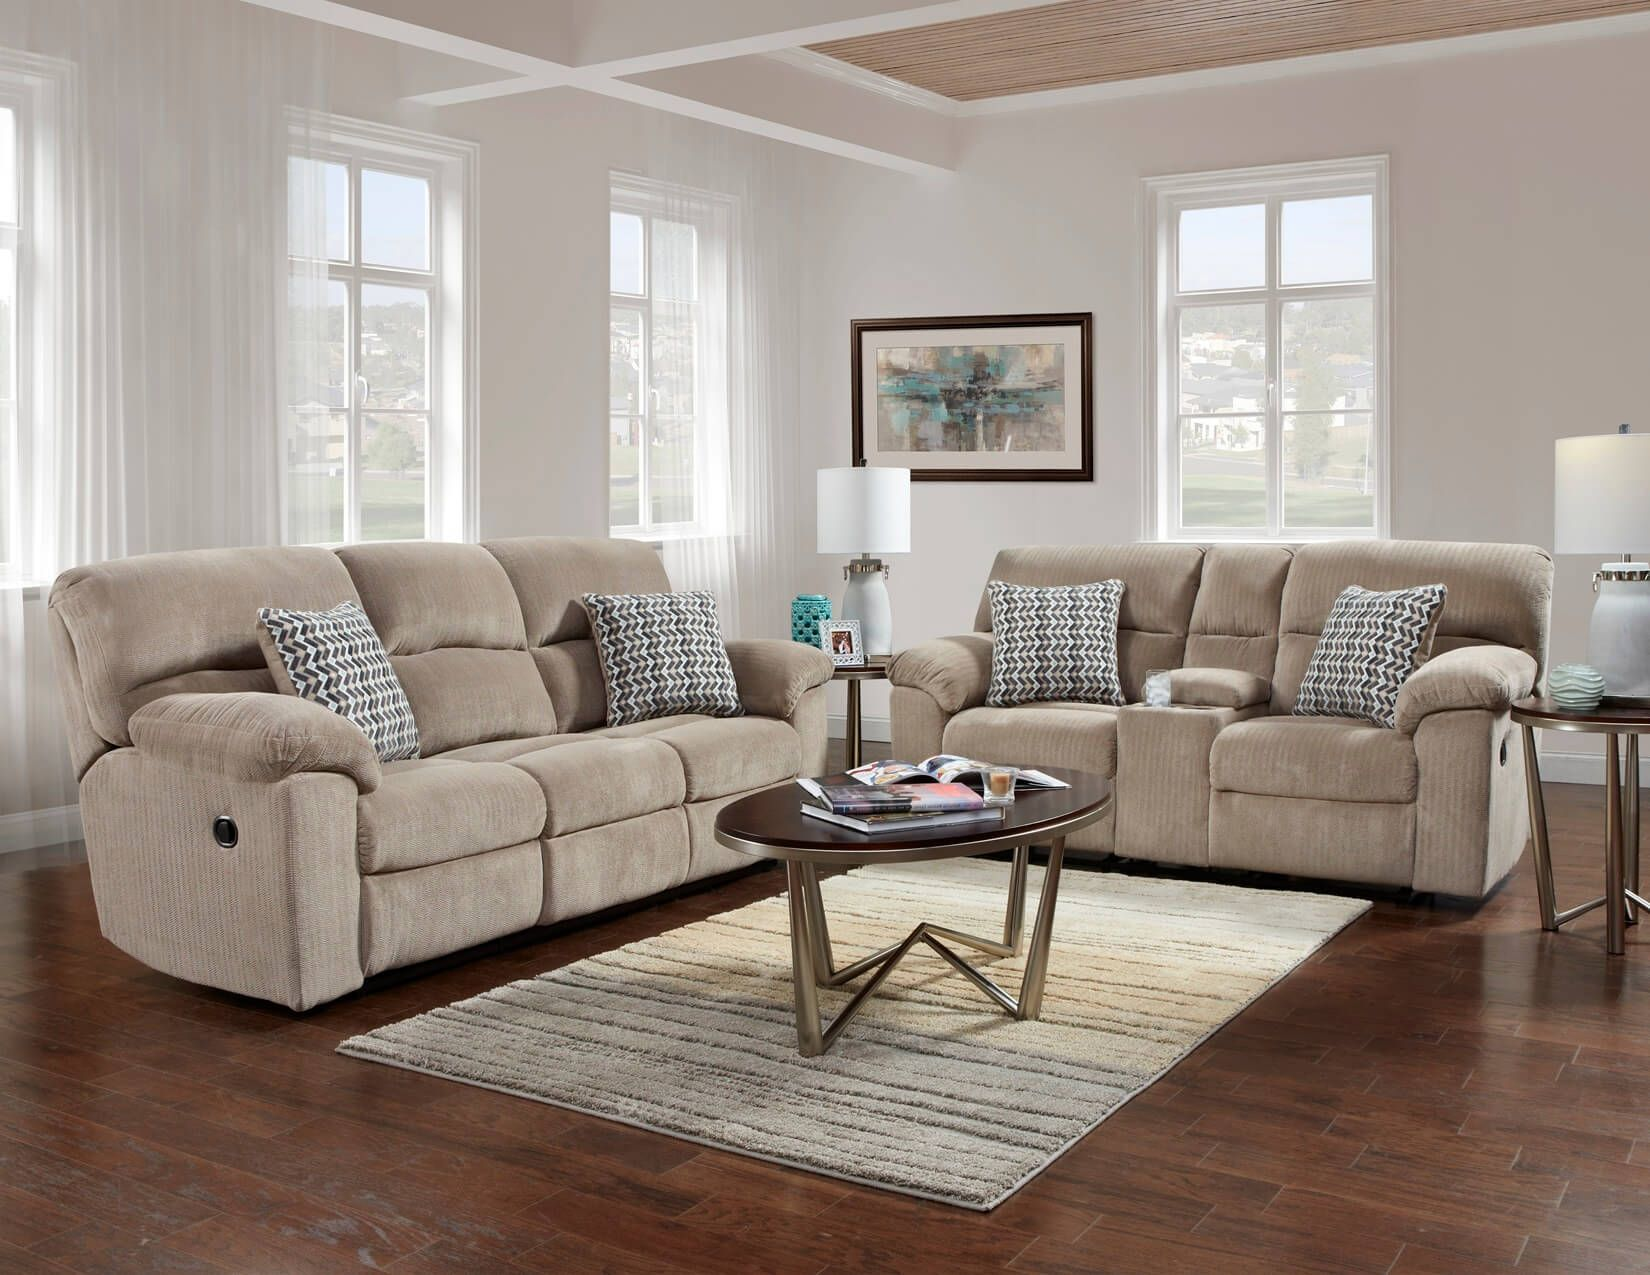 15 Some of the Coolest Ways How to Craft Reclining Sofa Living Room Set